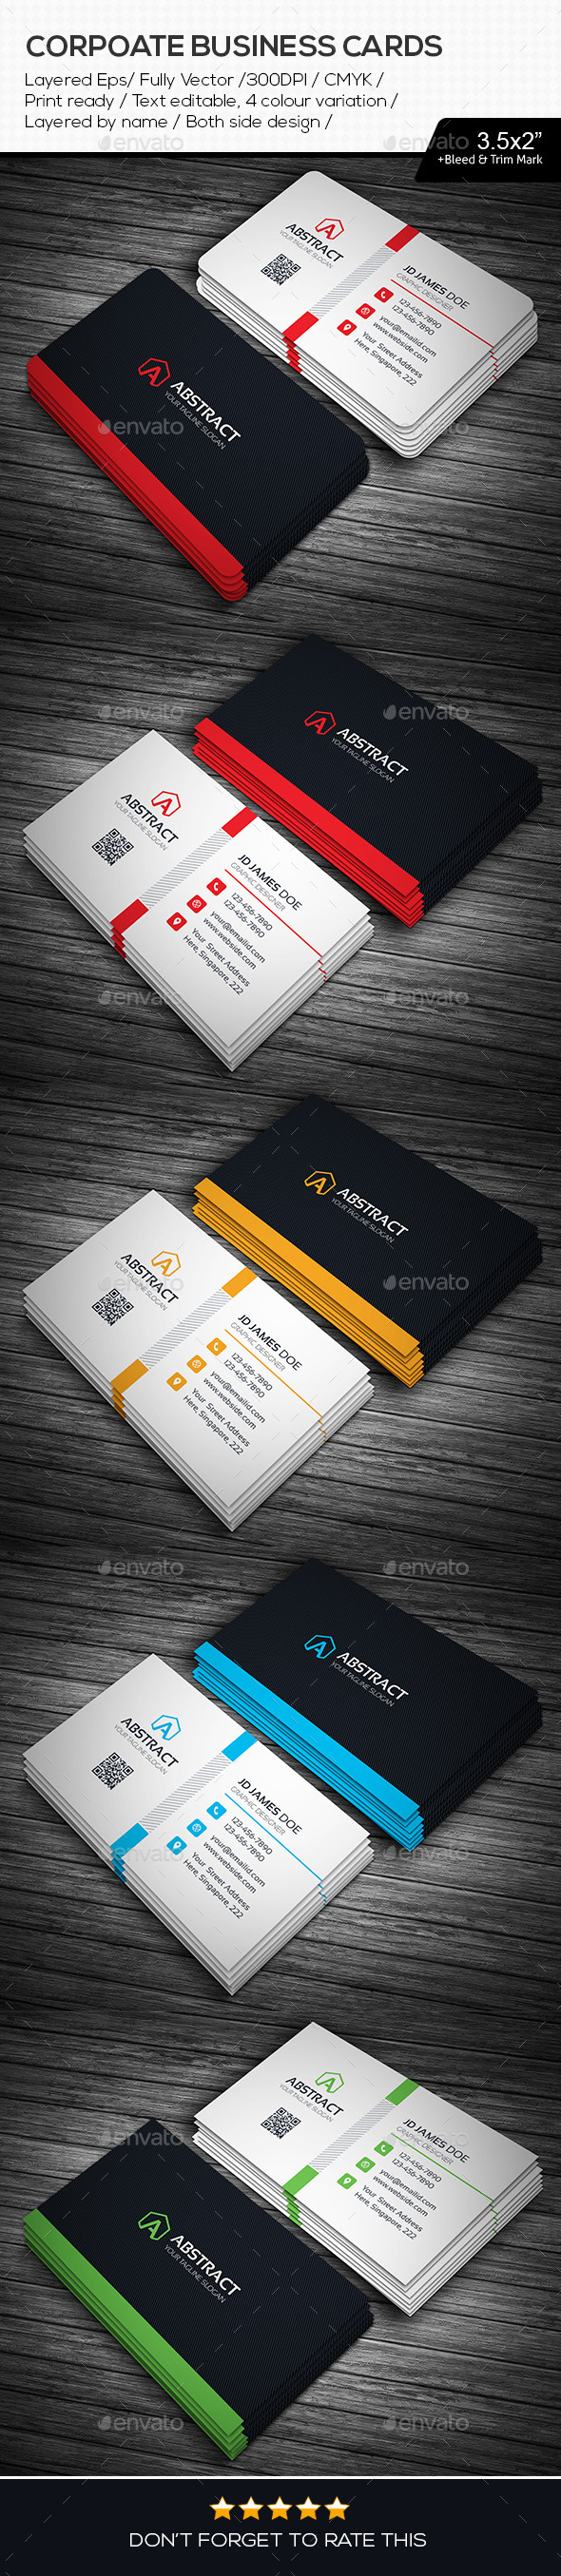 GraphicRiver Abstract Corporate Business Cards 11265086